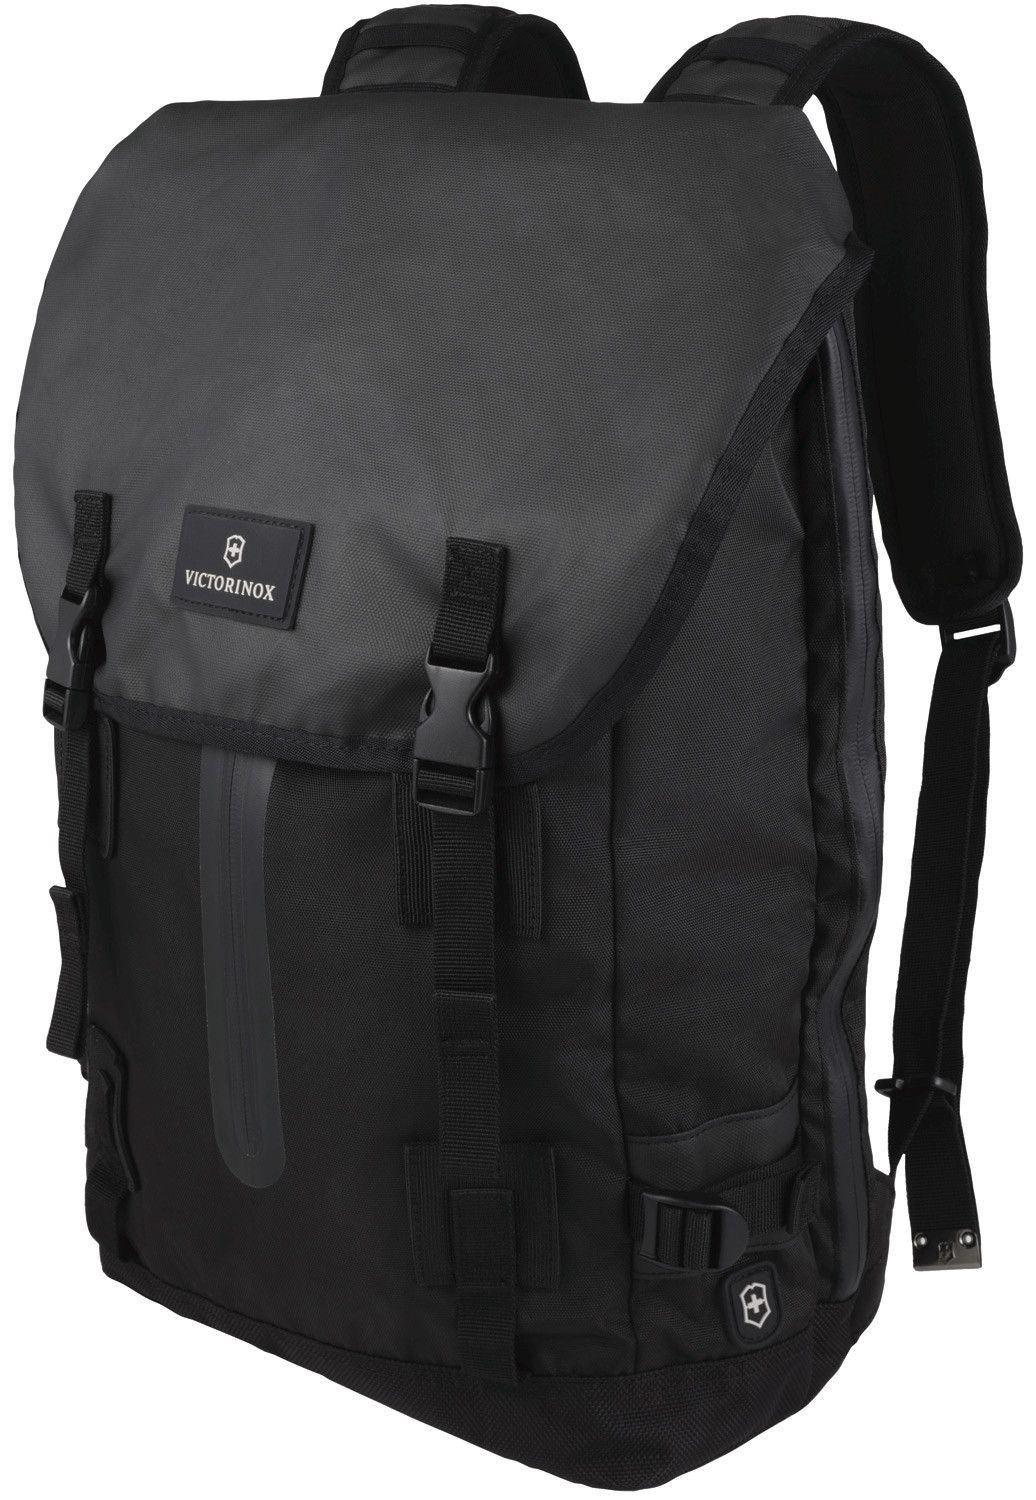 Flapover Drawstring Laptop Backpack by Victorinox Travel Gear, the ...